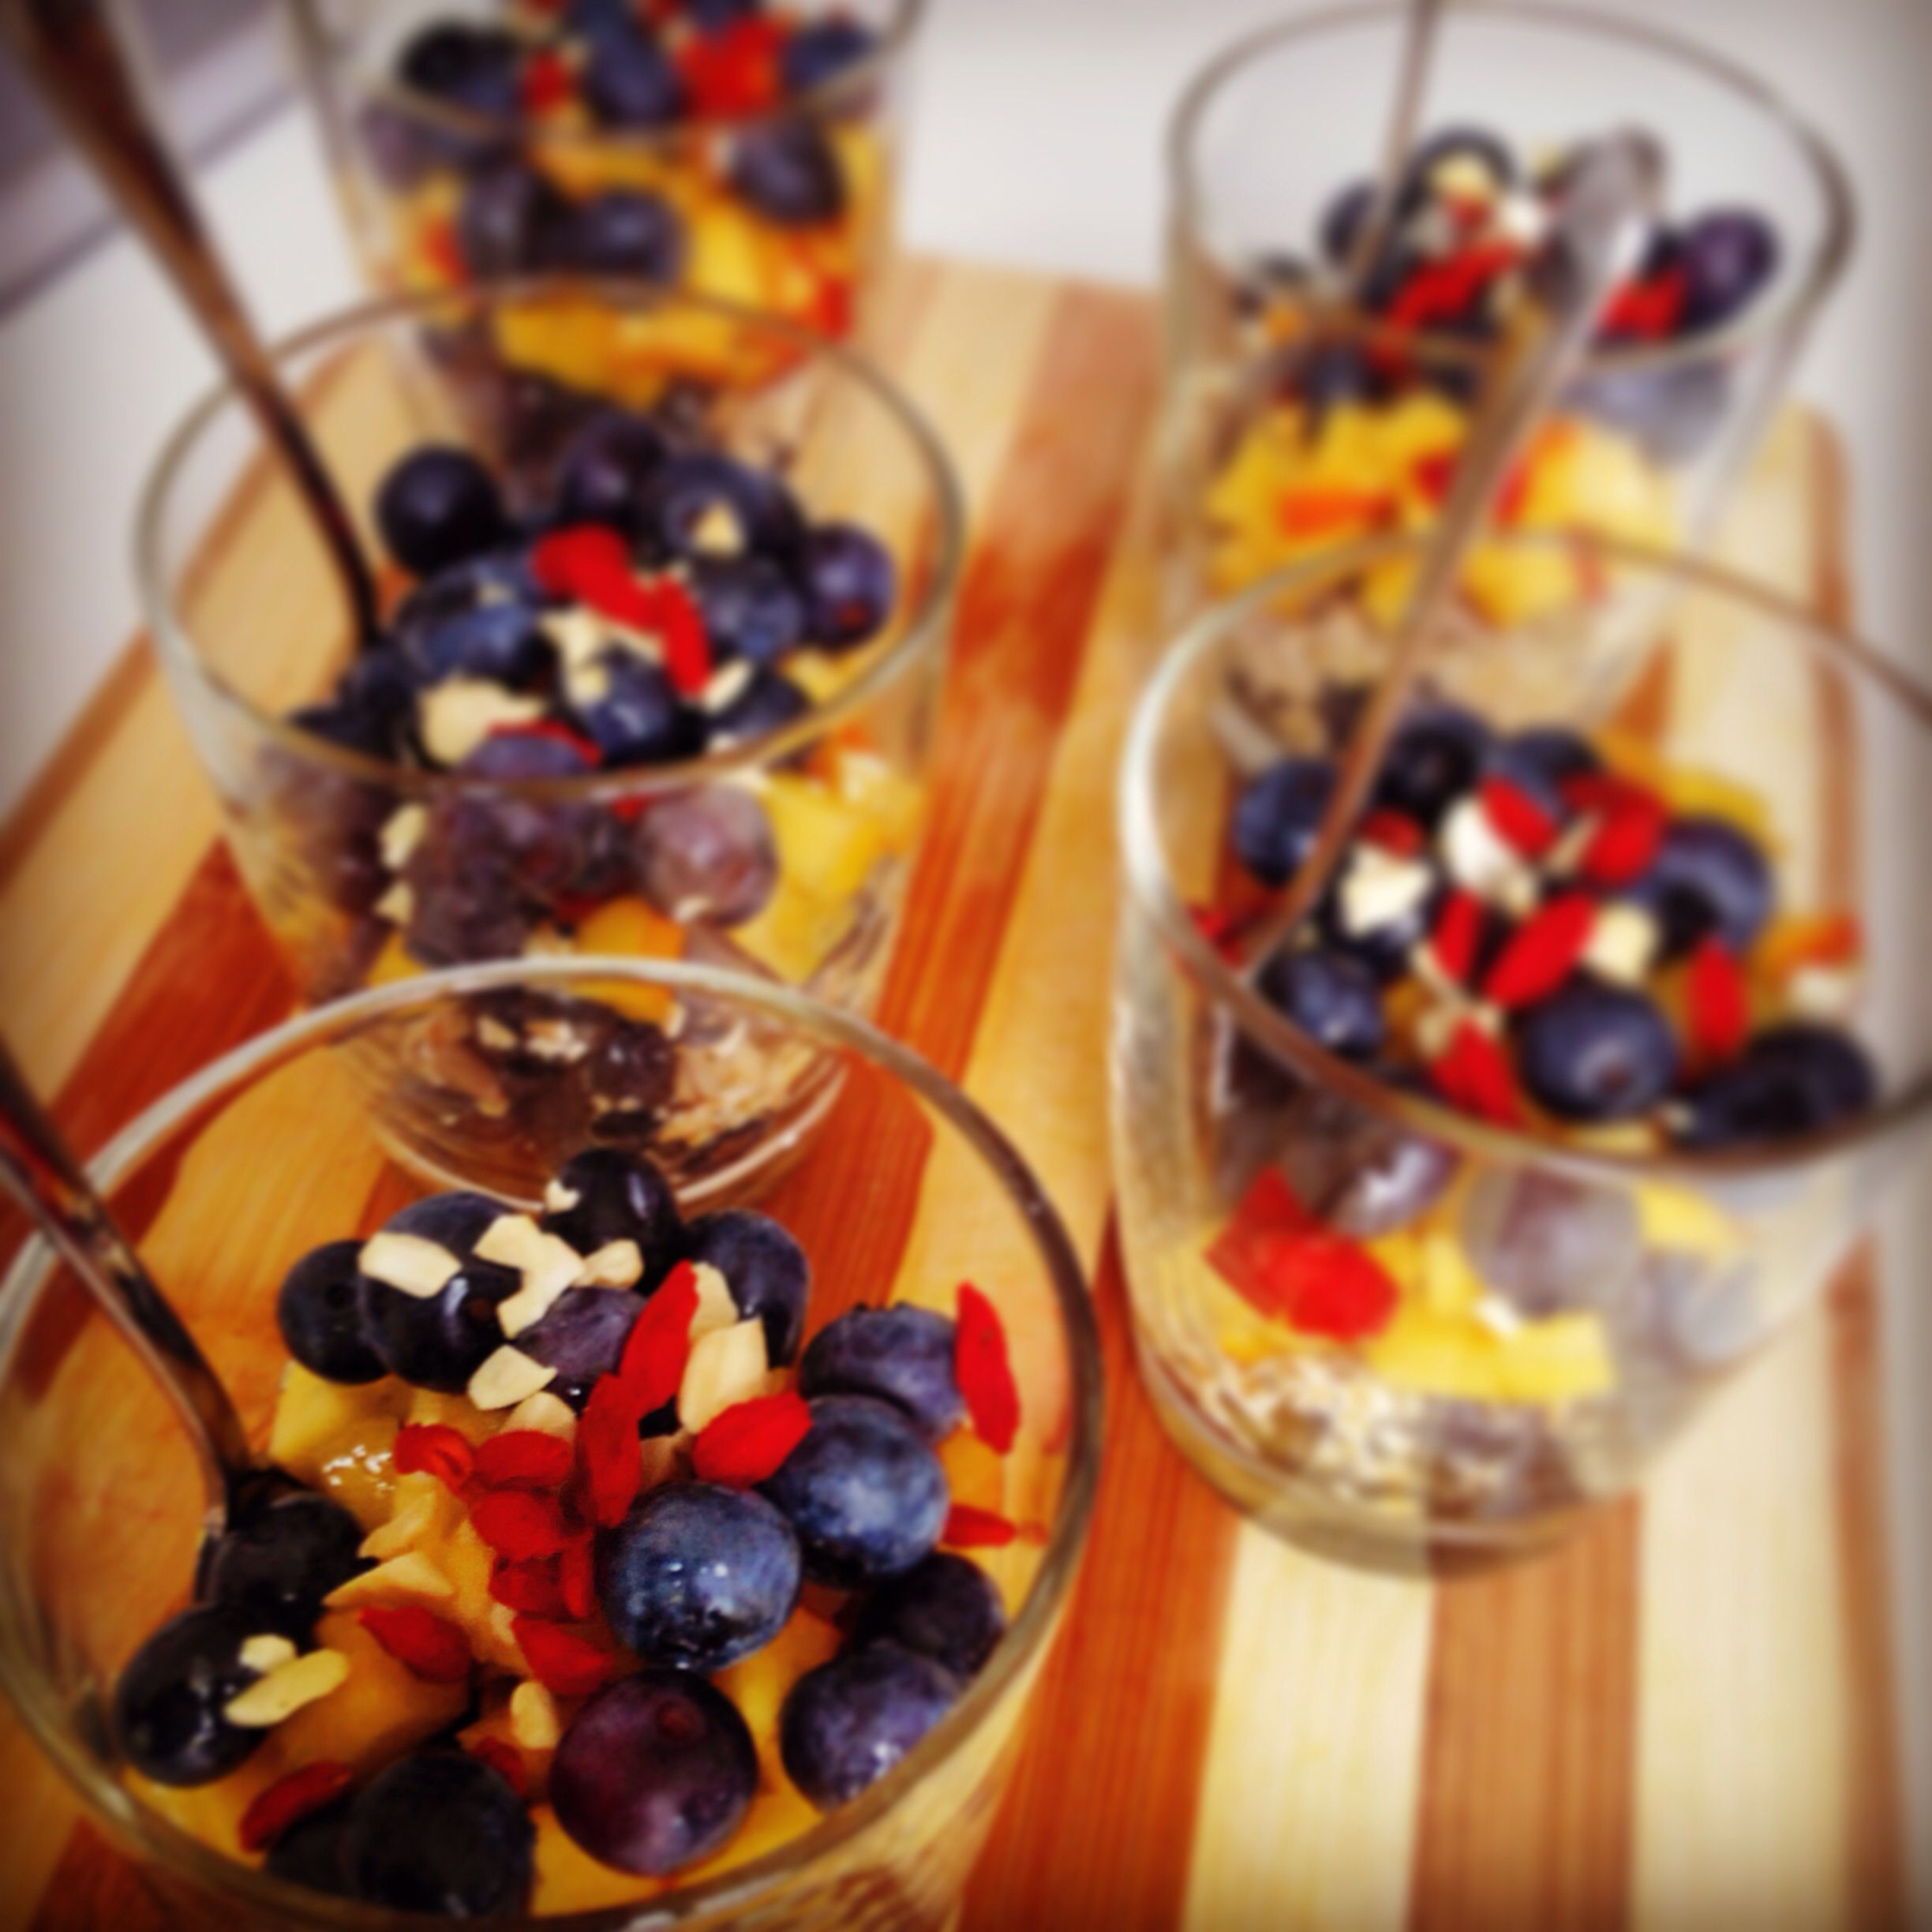 Day 12: snack blueberries, nectarine. oats, sunflower seeds, goji berries, cashew nuts, agave sirup